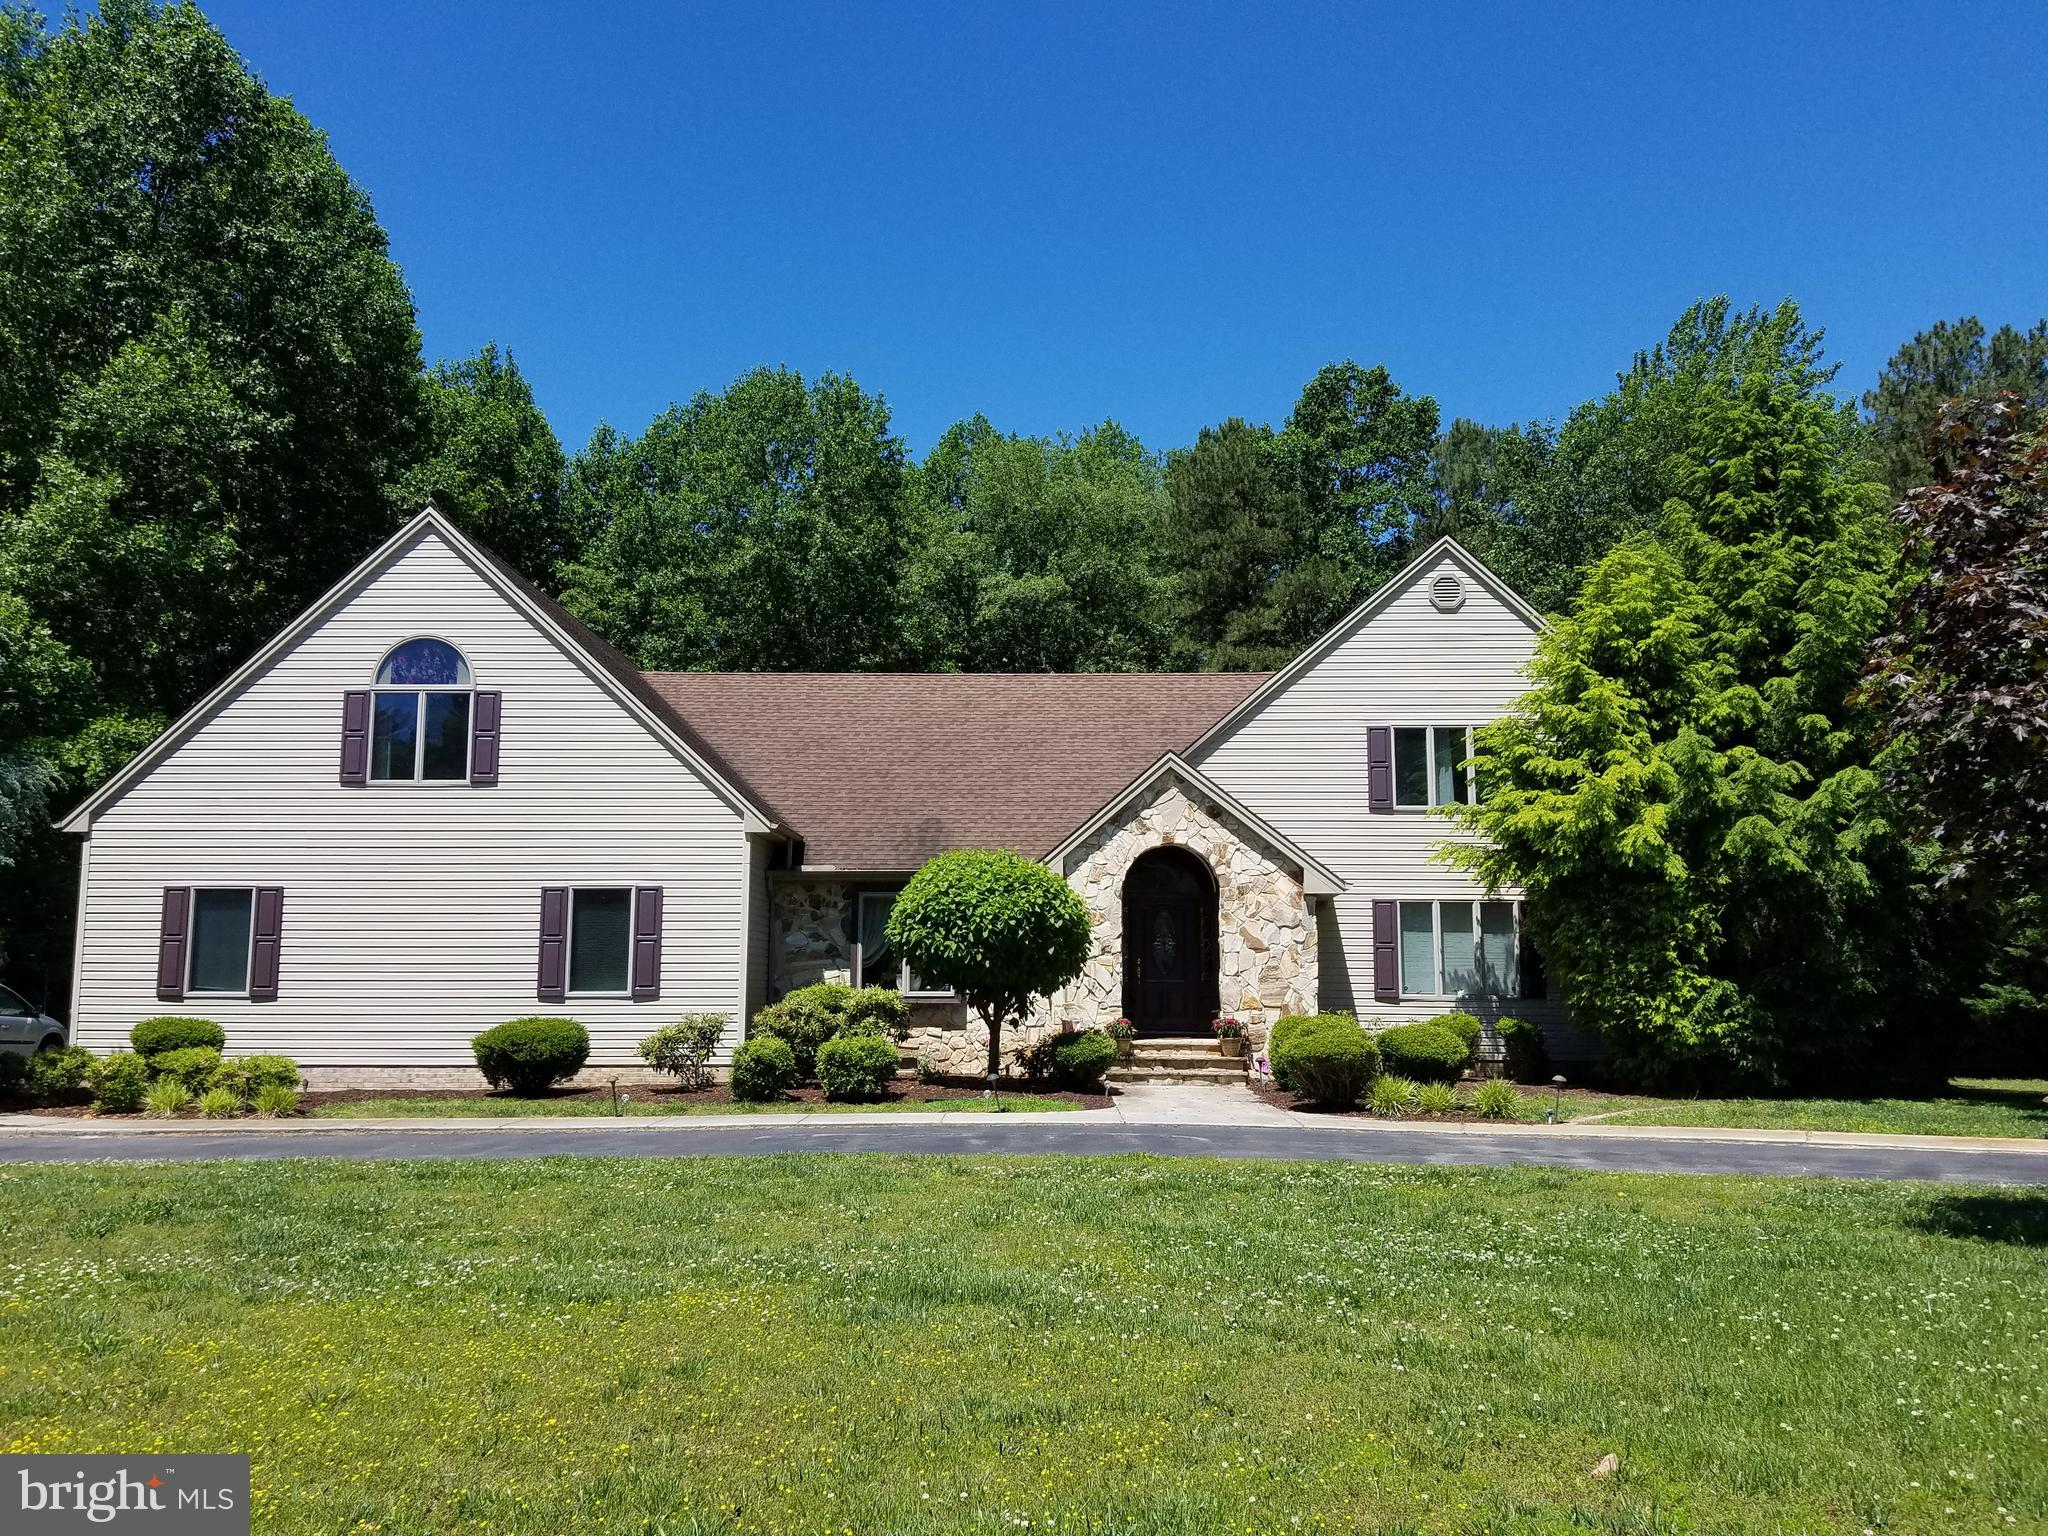 8594 SHADOW LANE, DELMAR, MD 21875